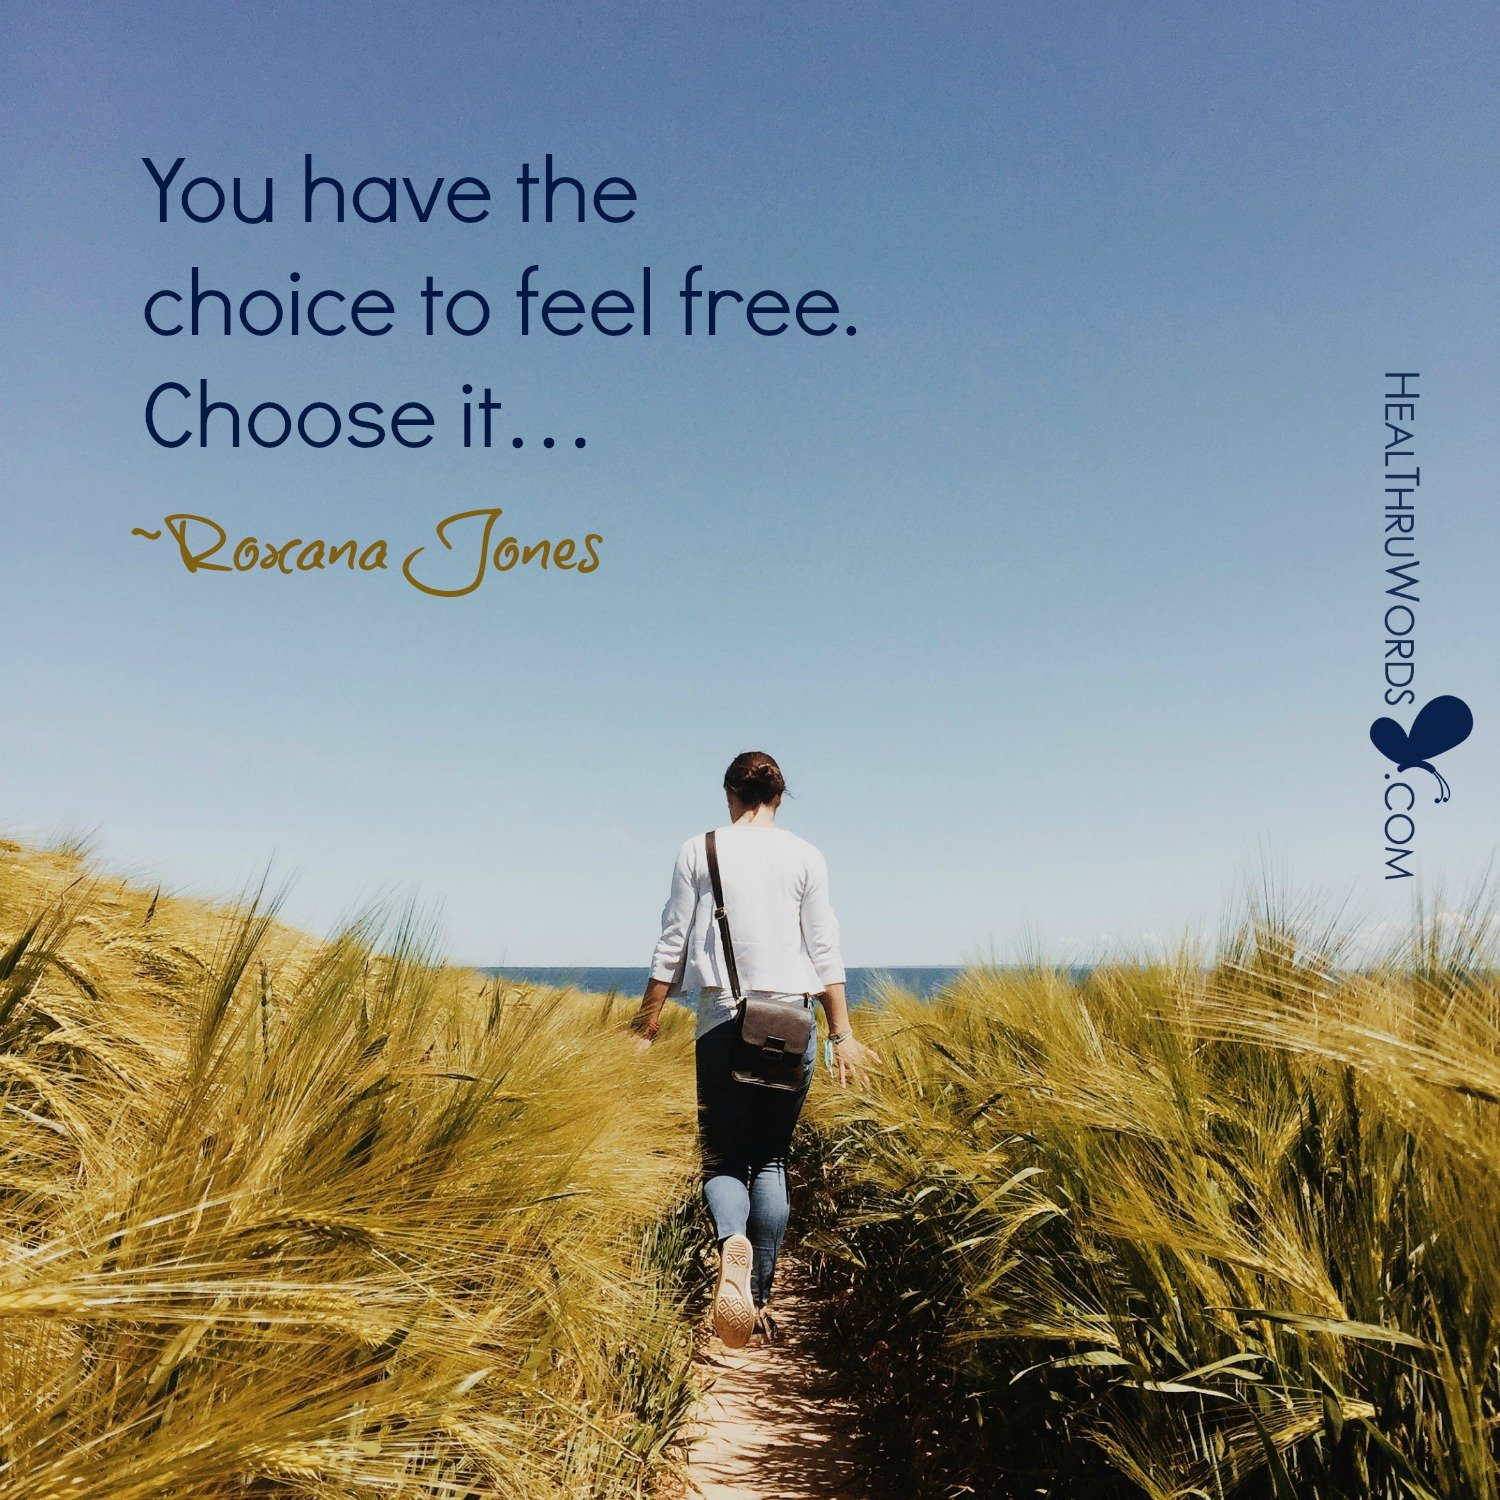 Inspirational Image: A Matter Of Choice